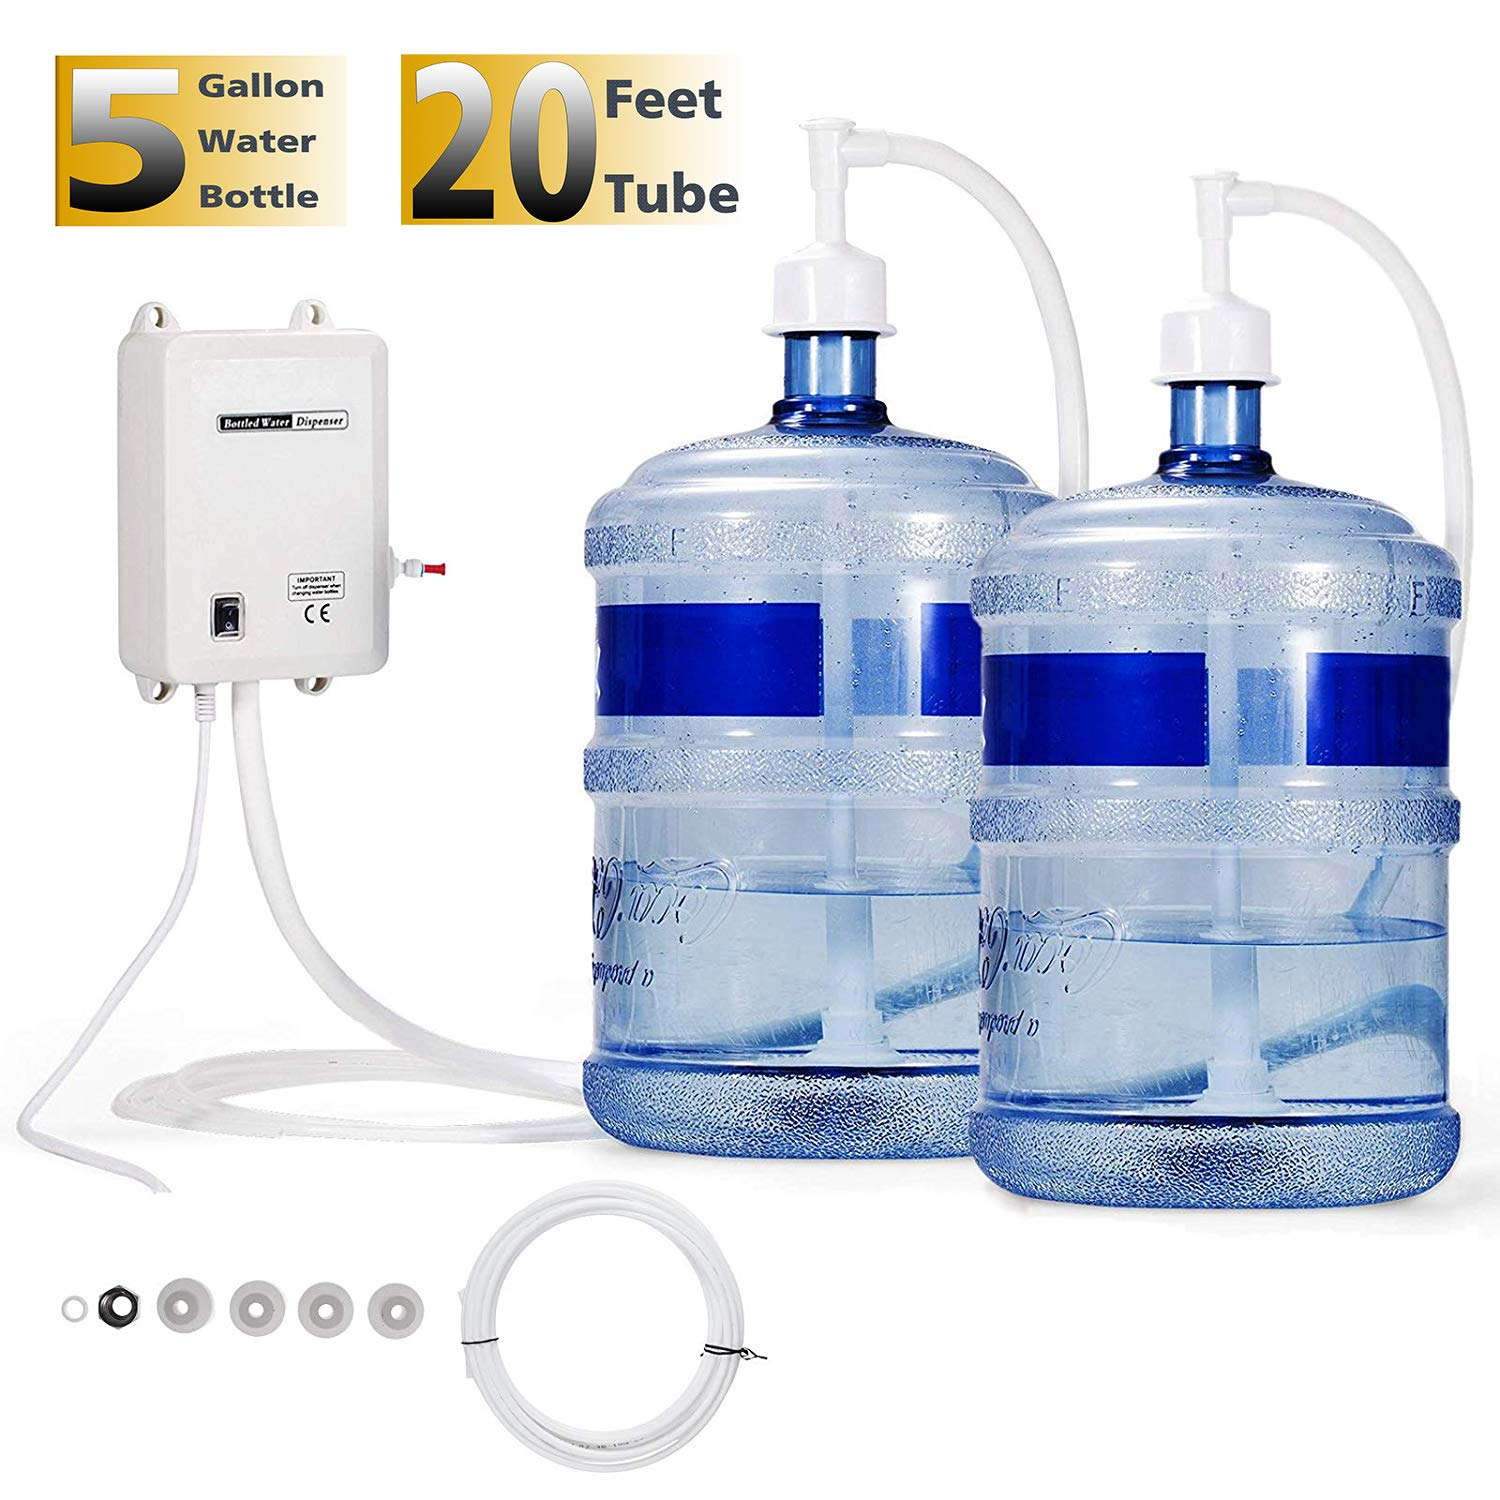 VEVOR Water Dispensing System 20 ft with US Plug 115V AC Perfect for 5 Gallon Bottle, Doubel Inlet by VEVOR